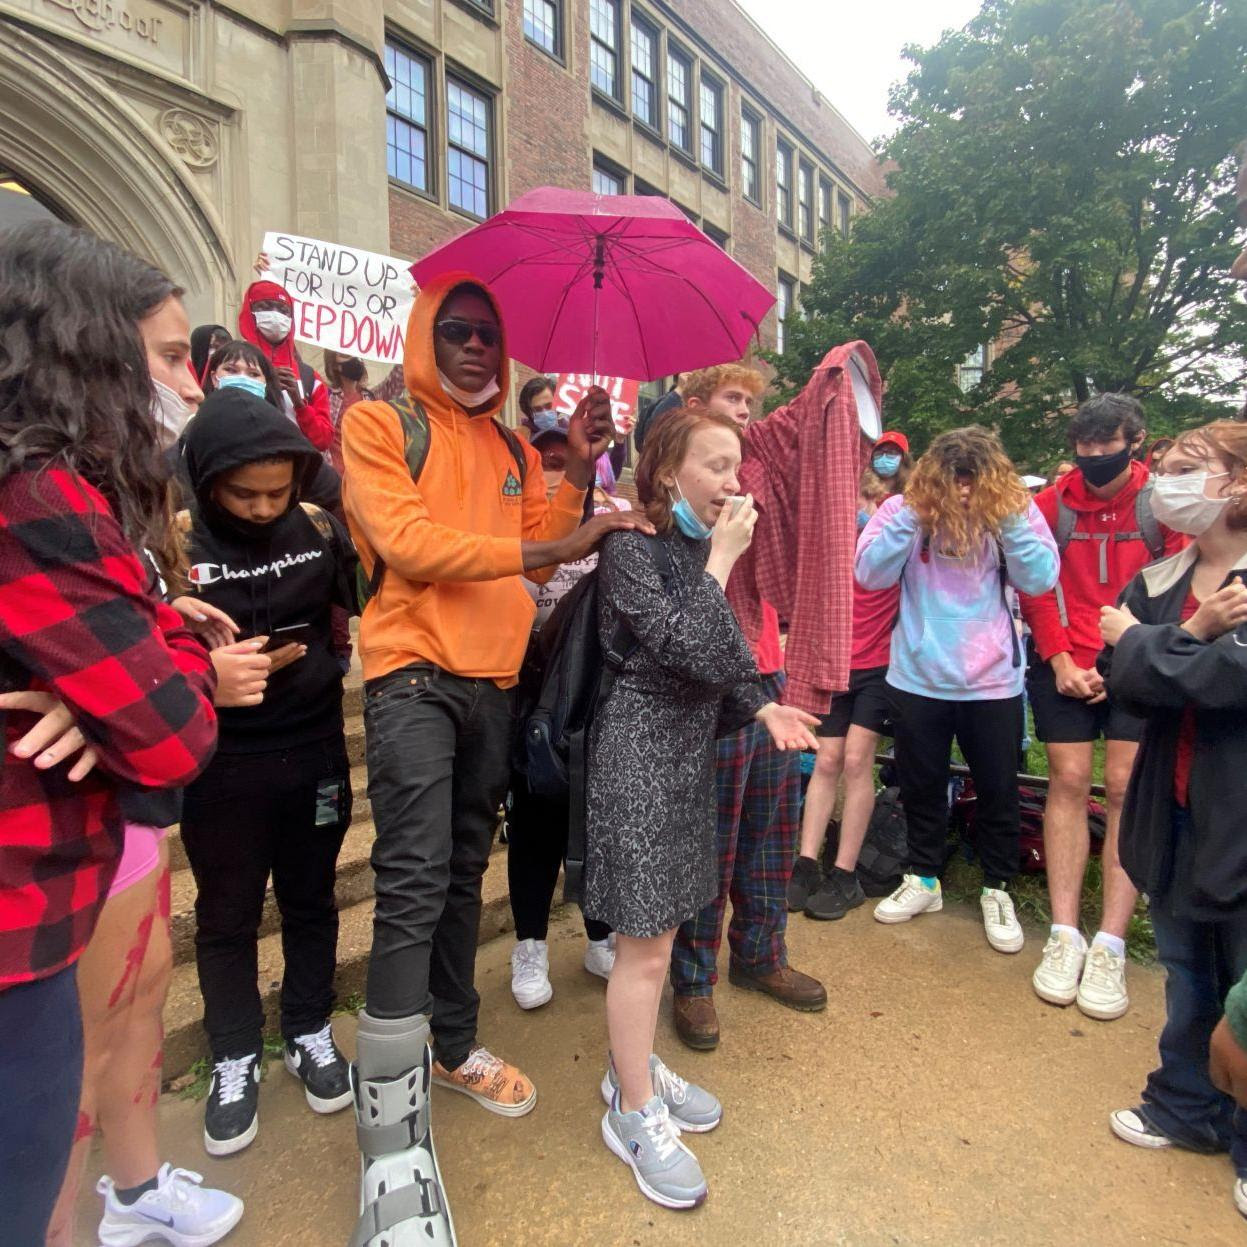 East High students call out principal, wage walkout to support survivors of sexual assault